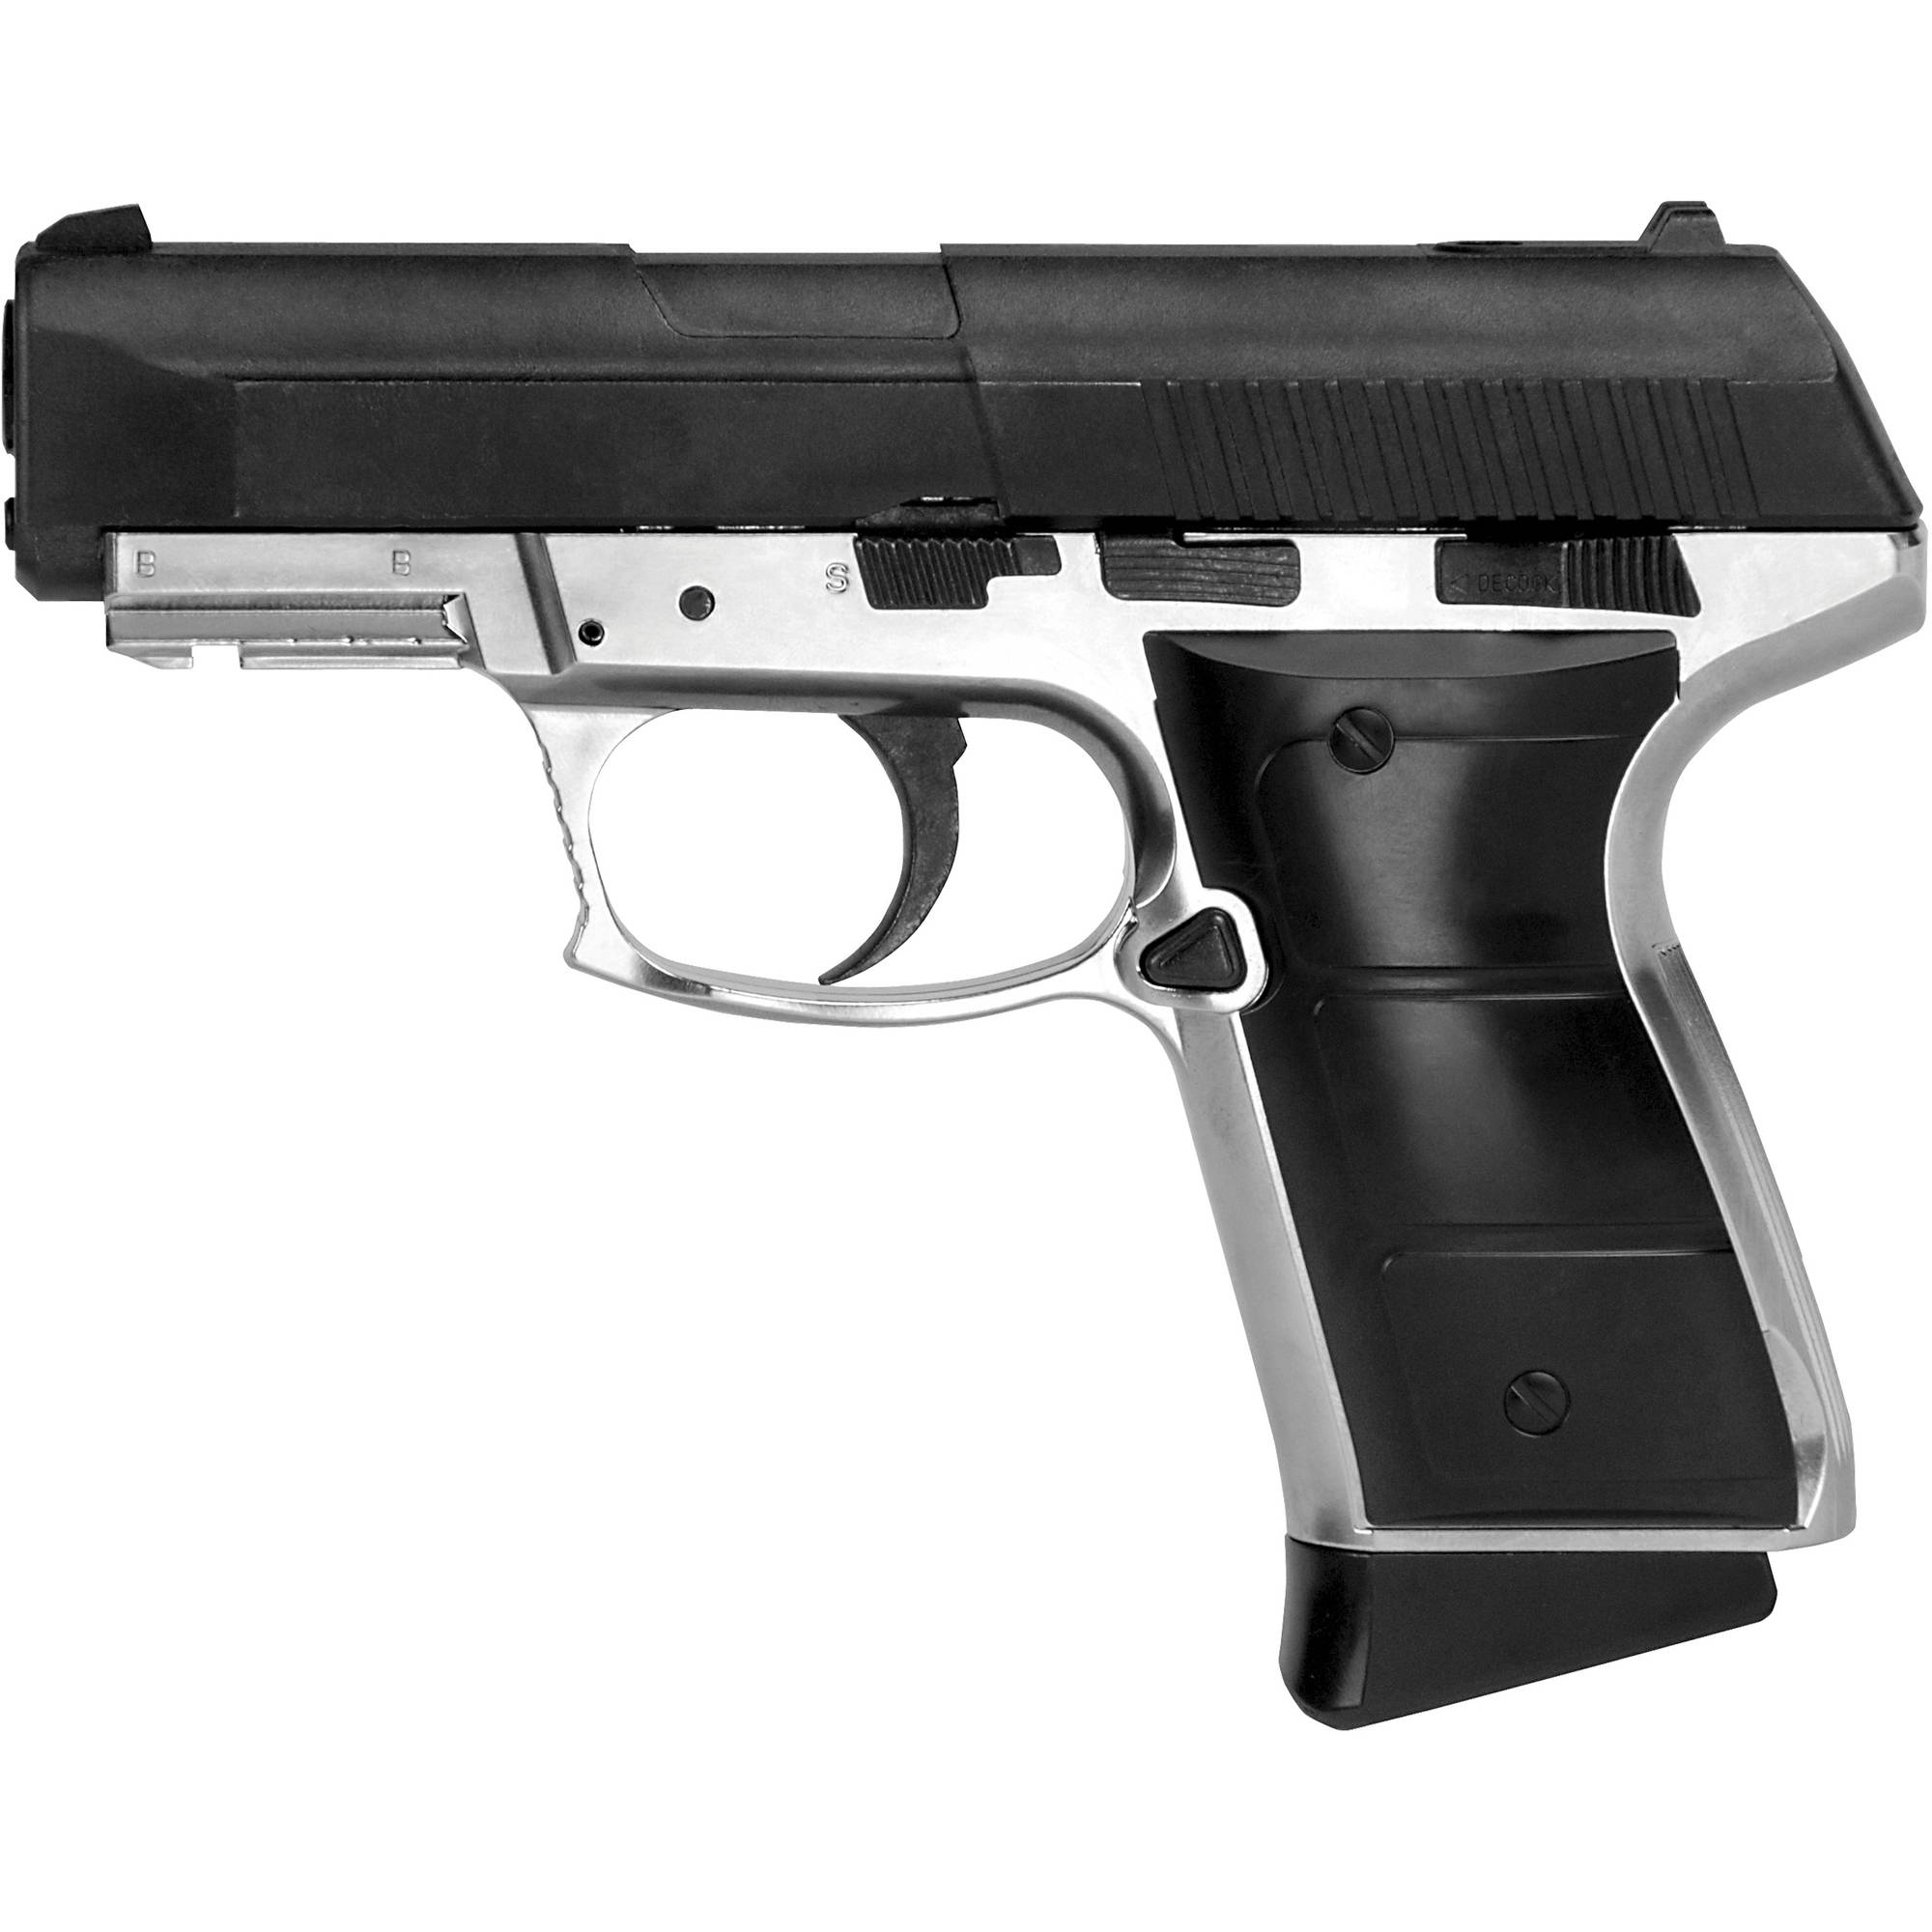 Daisy Model 5501 CO2 Pistol by Daisy